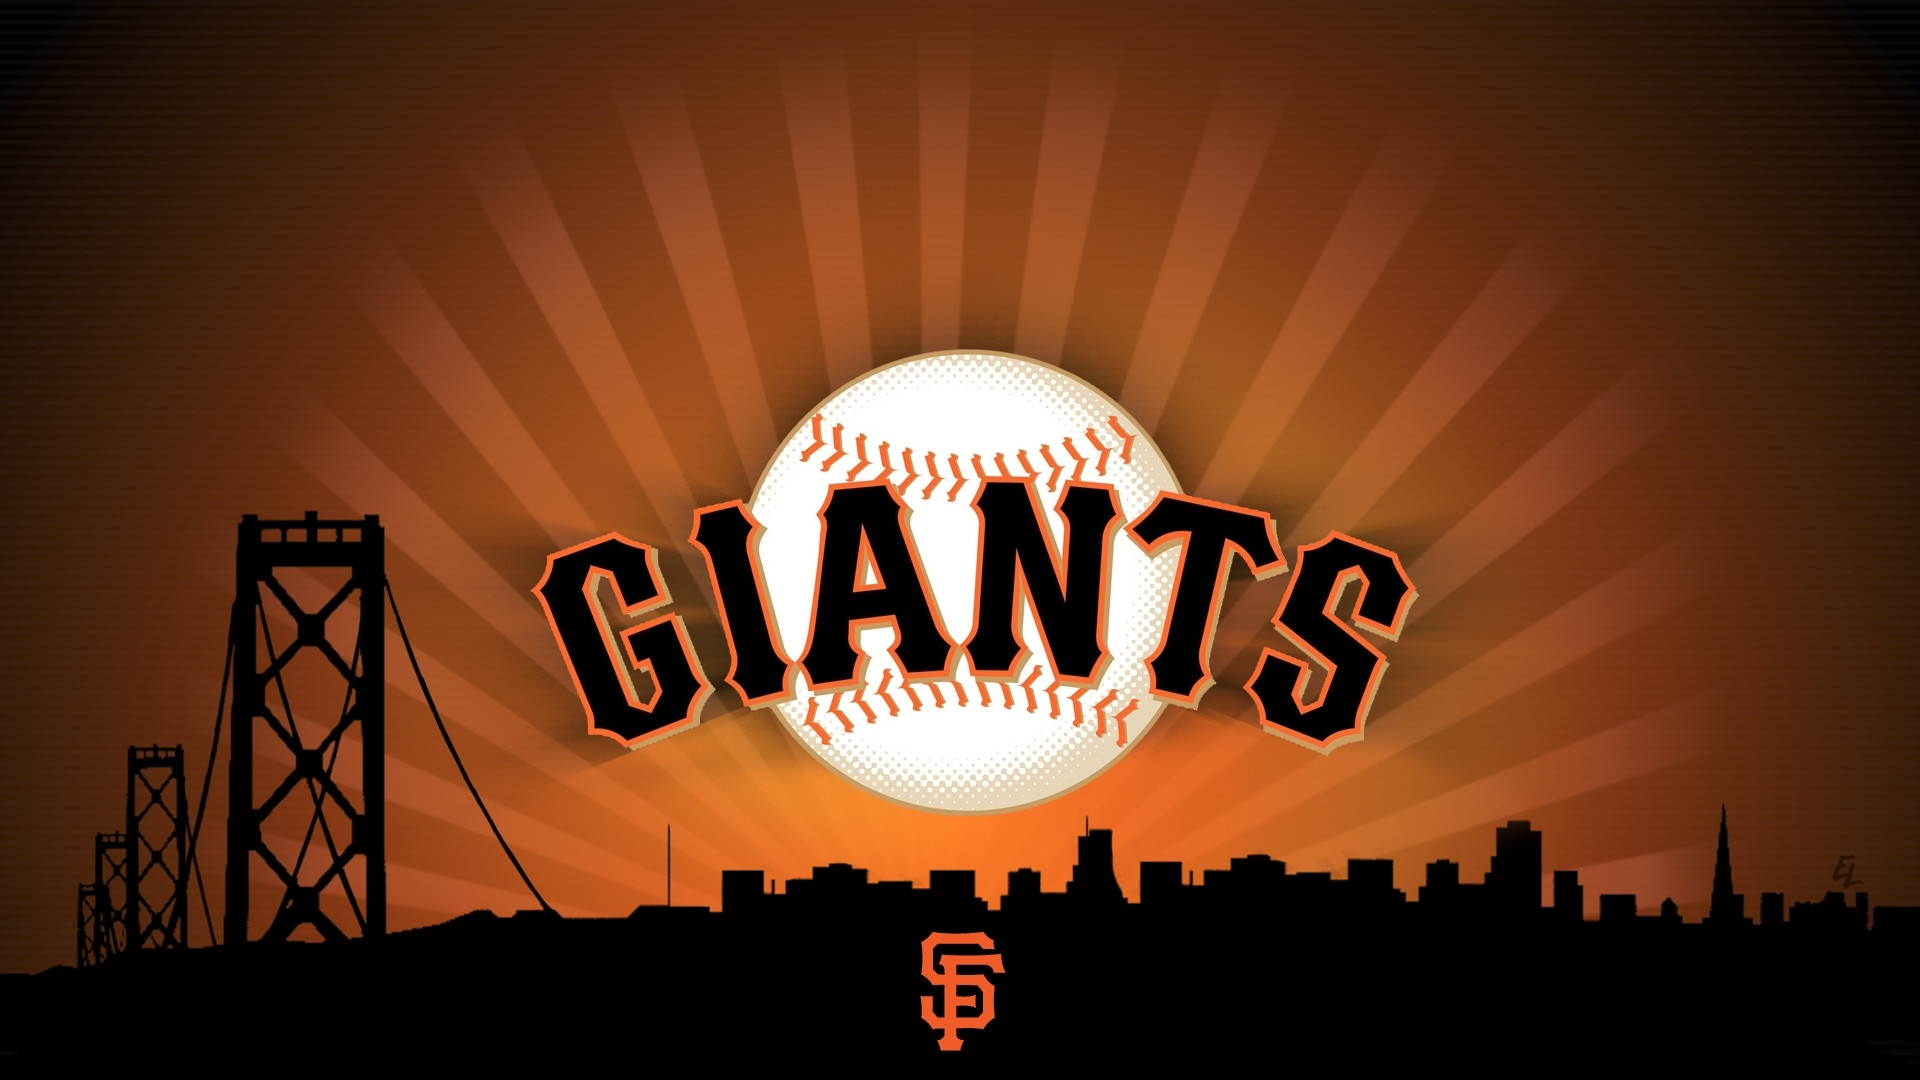 10 Best San Francisco Giants Screensaver FULL HD 1080p For PC Desktop